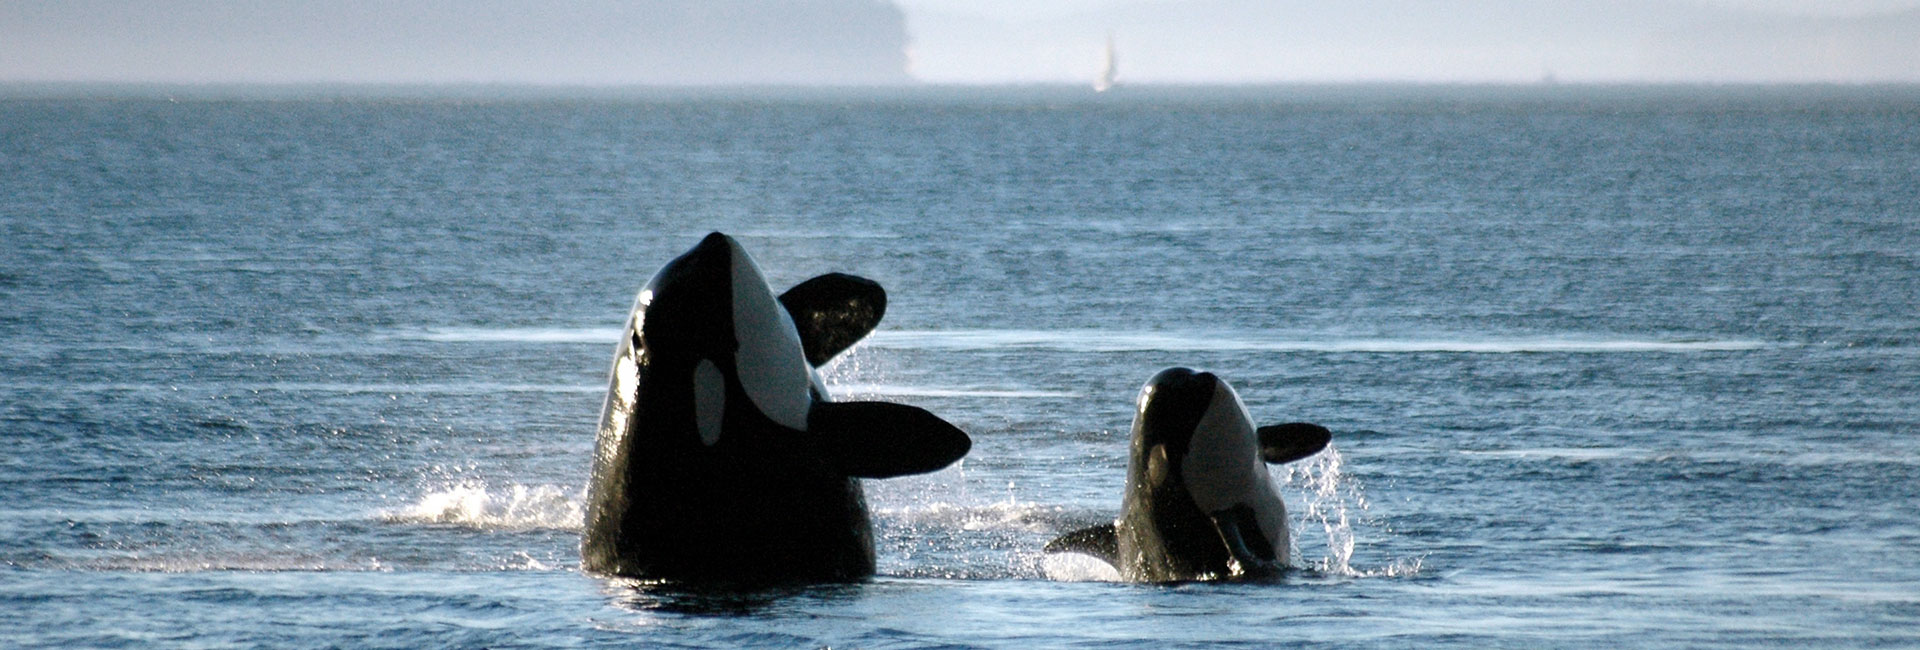 Killer whales leaping out of water